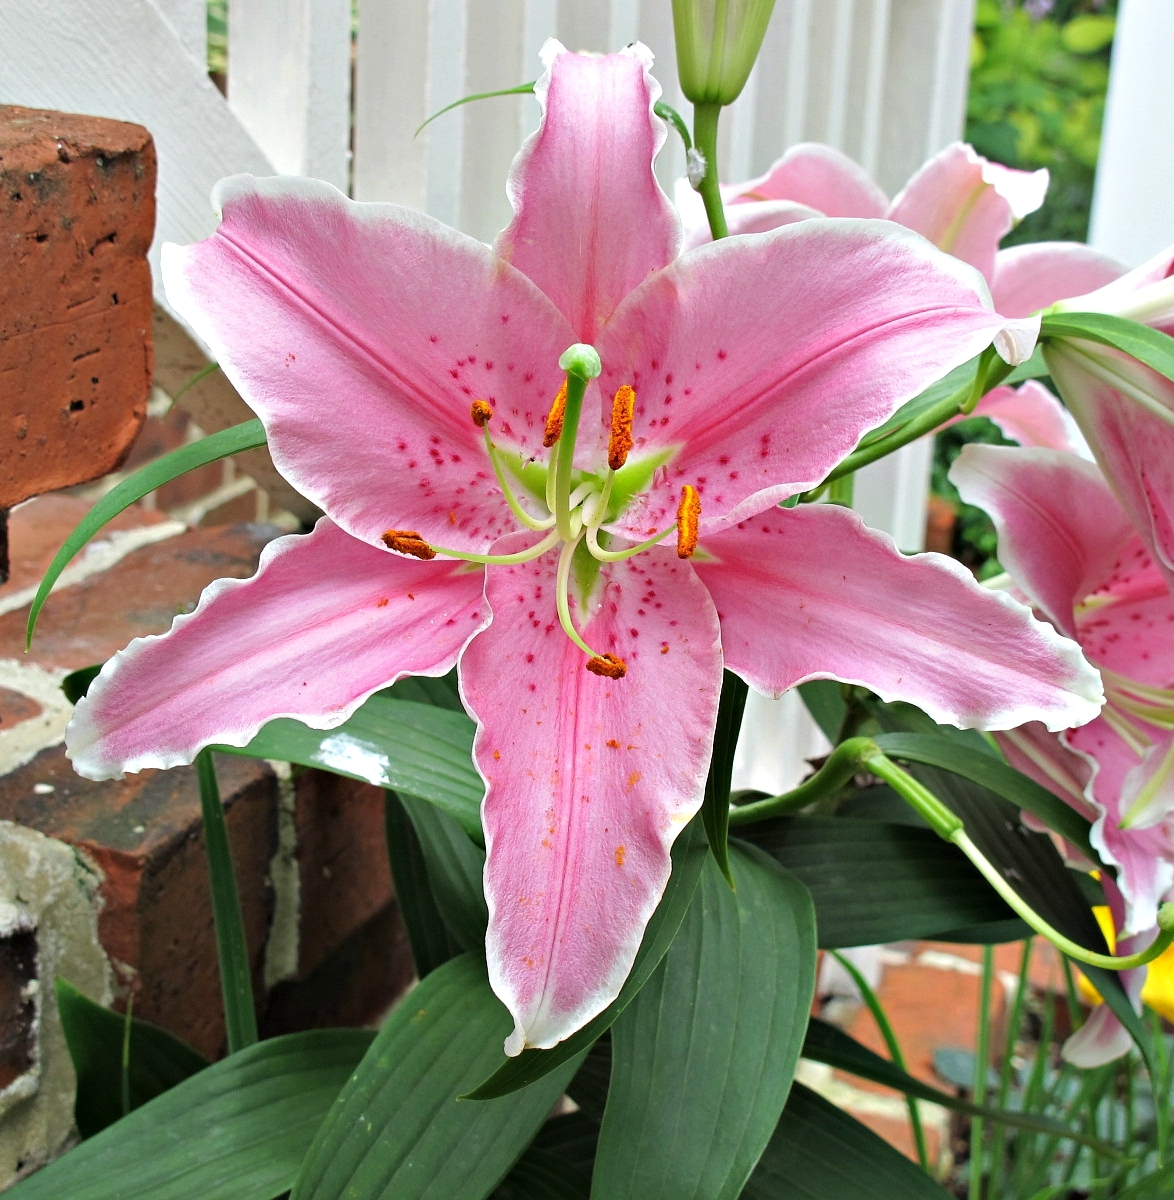 Pink Sapphire Oriental Lily, Lilium Oriental, Kentlands, Gaithersburg, Maryland USA IMG 5048 Canon PowerShot G11 Camera Photograph by Roy Kelley  Roy and Dolores Kelley Photographs